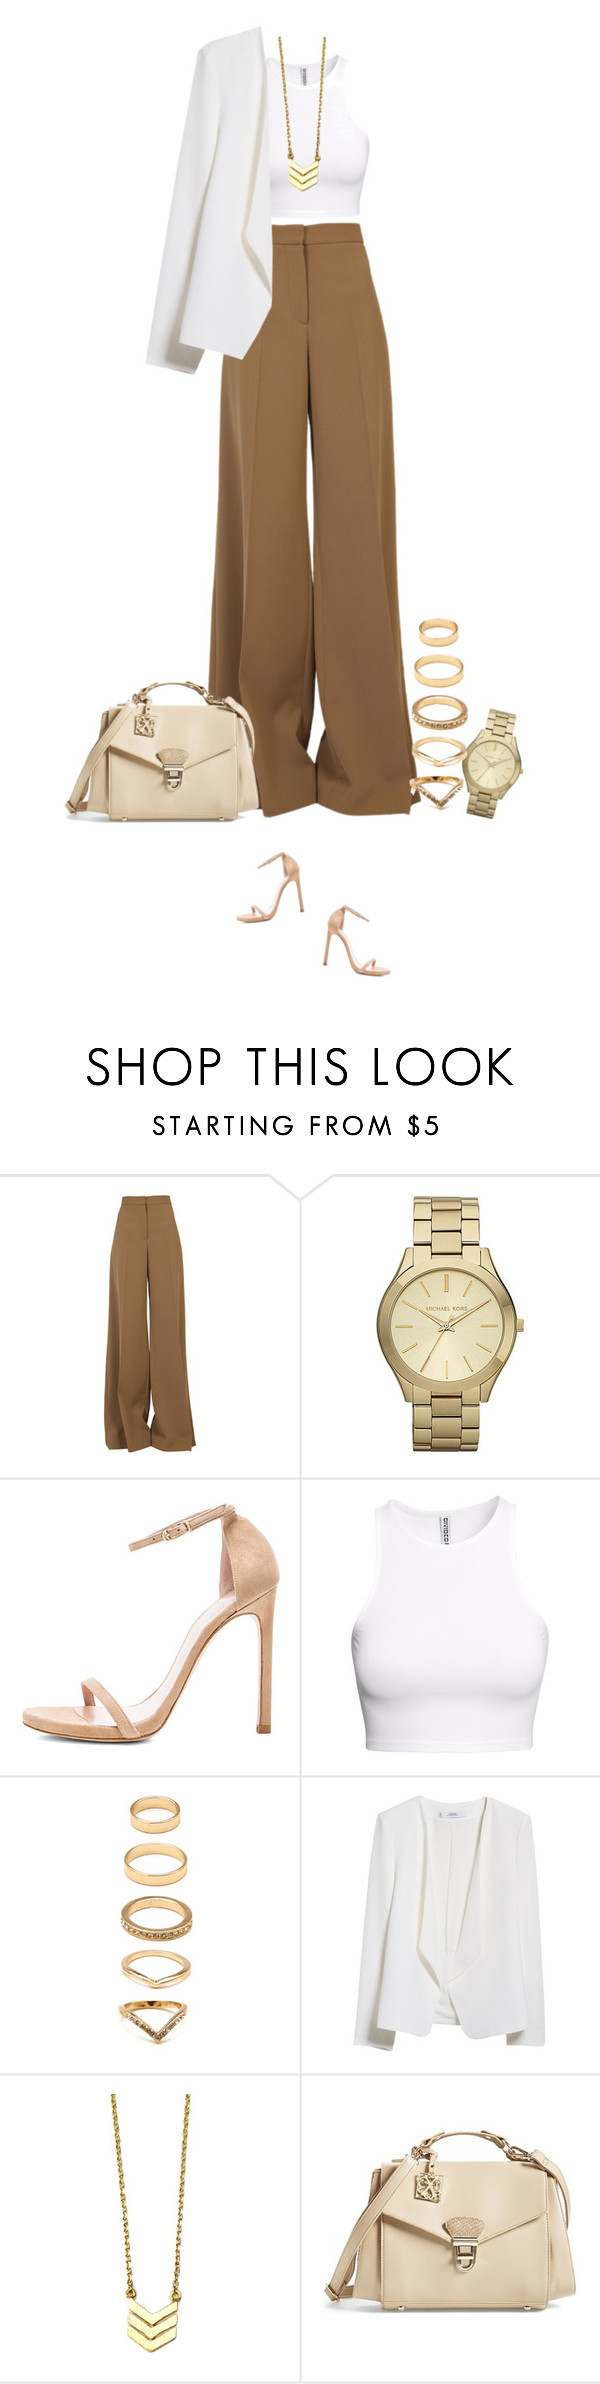 """""""Fancy dinner !"""" by azzra ❤ liked on Polyvore featuring STELLA McCARTNEY, Michael Kors, Stuart Weitzman, H&M, Forever 21, MANGO and CXL by Christian Lacroix"""